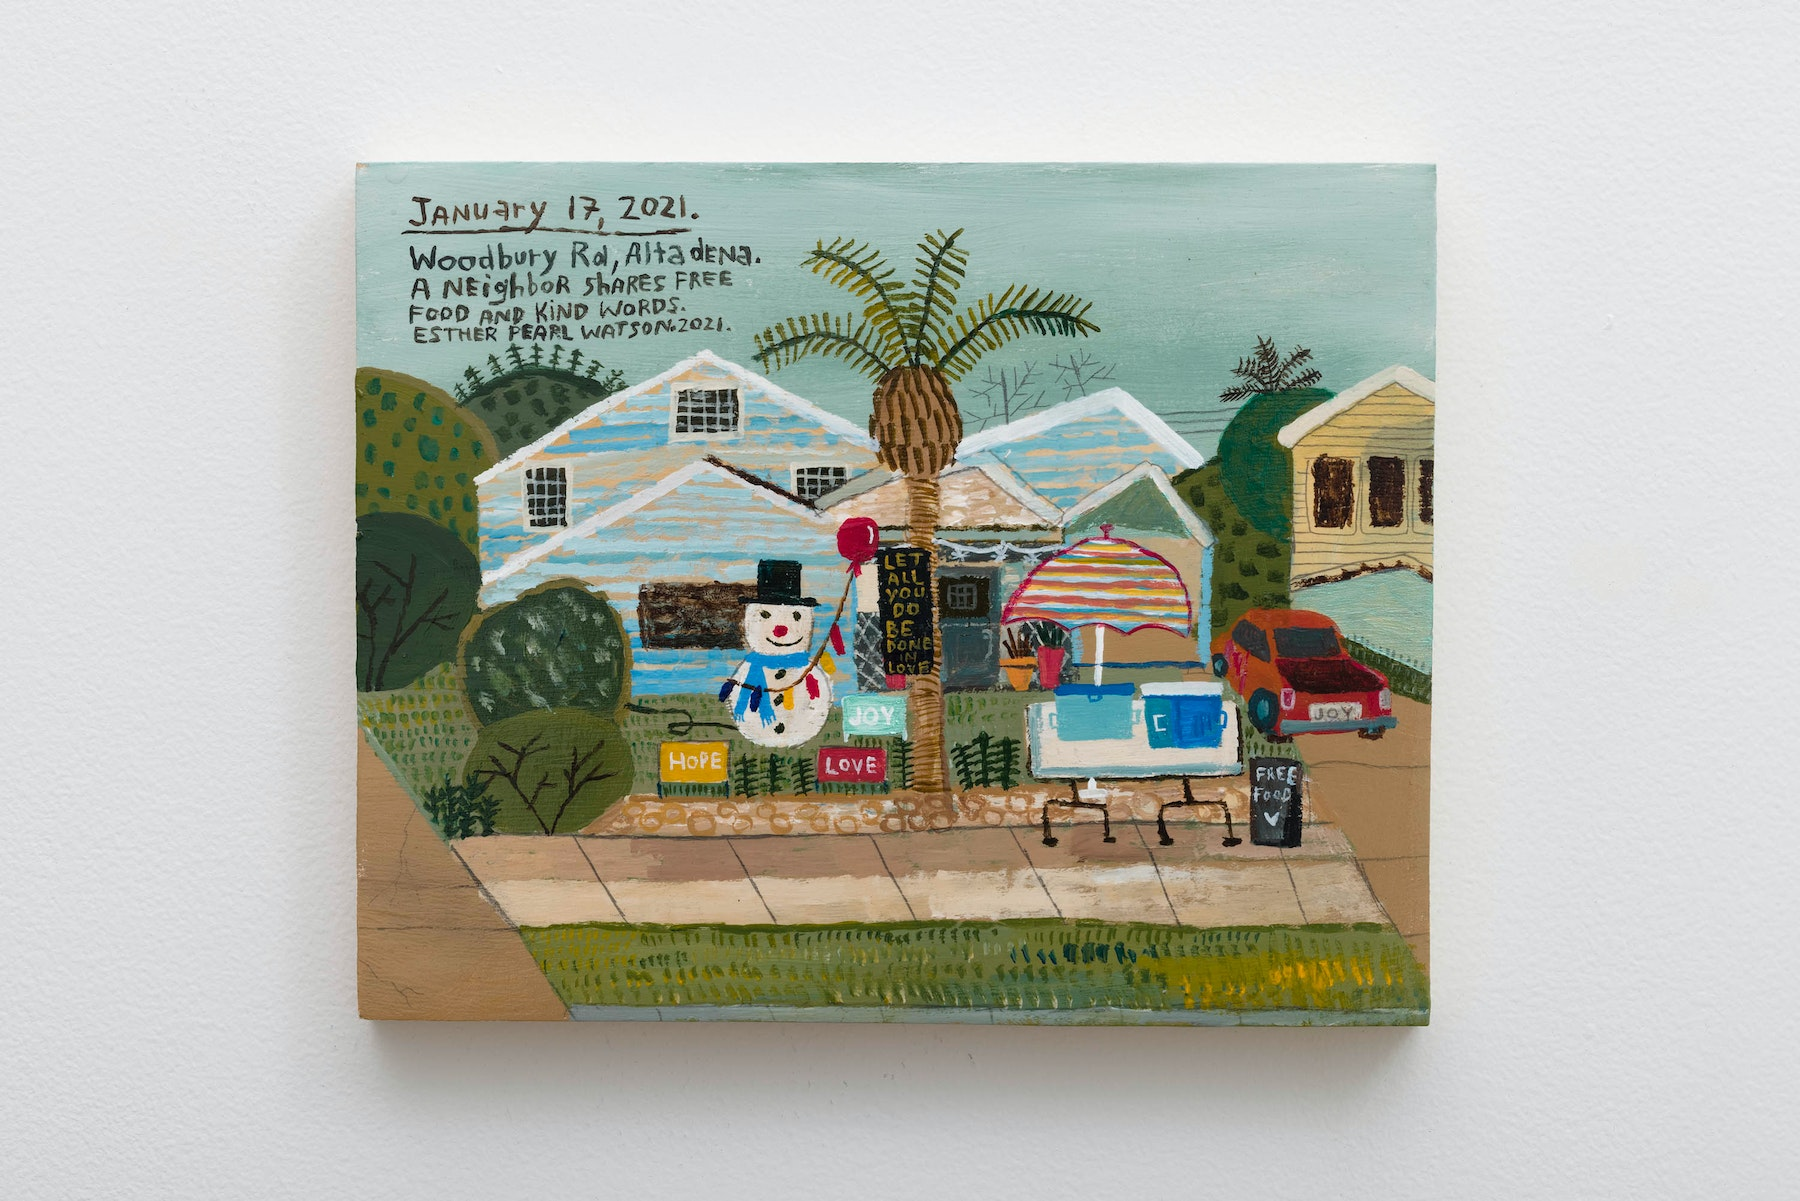 """Esther Pearl Watson """"January 17, A Neighbor Shares Free Food,"""" 2021 Acrylic on panel 8"""" x 10"""" x ⁷⁄₈"""" [HxWxD] (20.32 x 25.4 x 2.21 cm) Inventory #EPW401 Courtesy of the artist and Vielmetter Los Angeles Photo credit: Jeff McLane Signed and dated on back"""